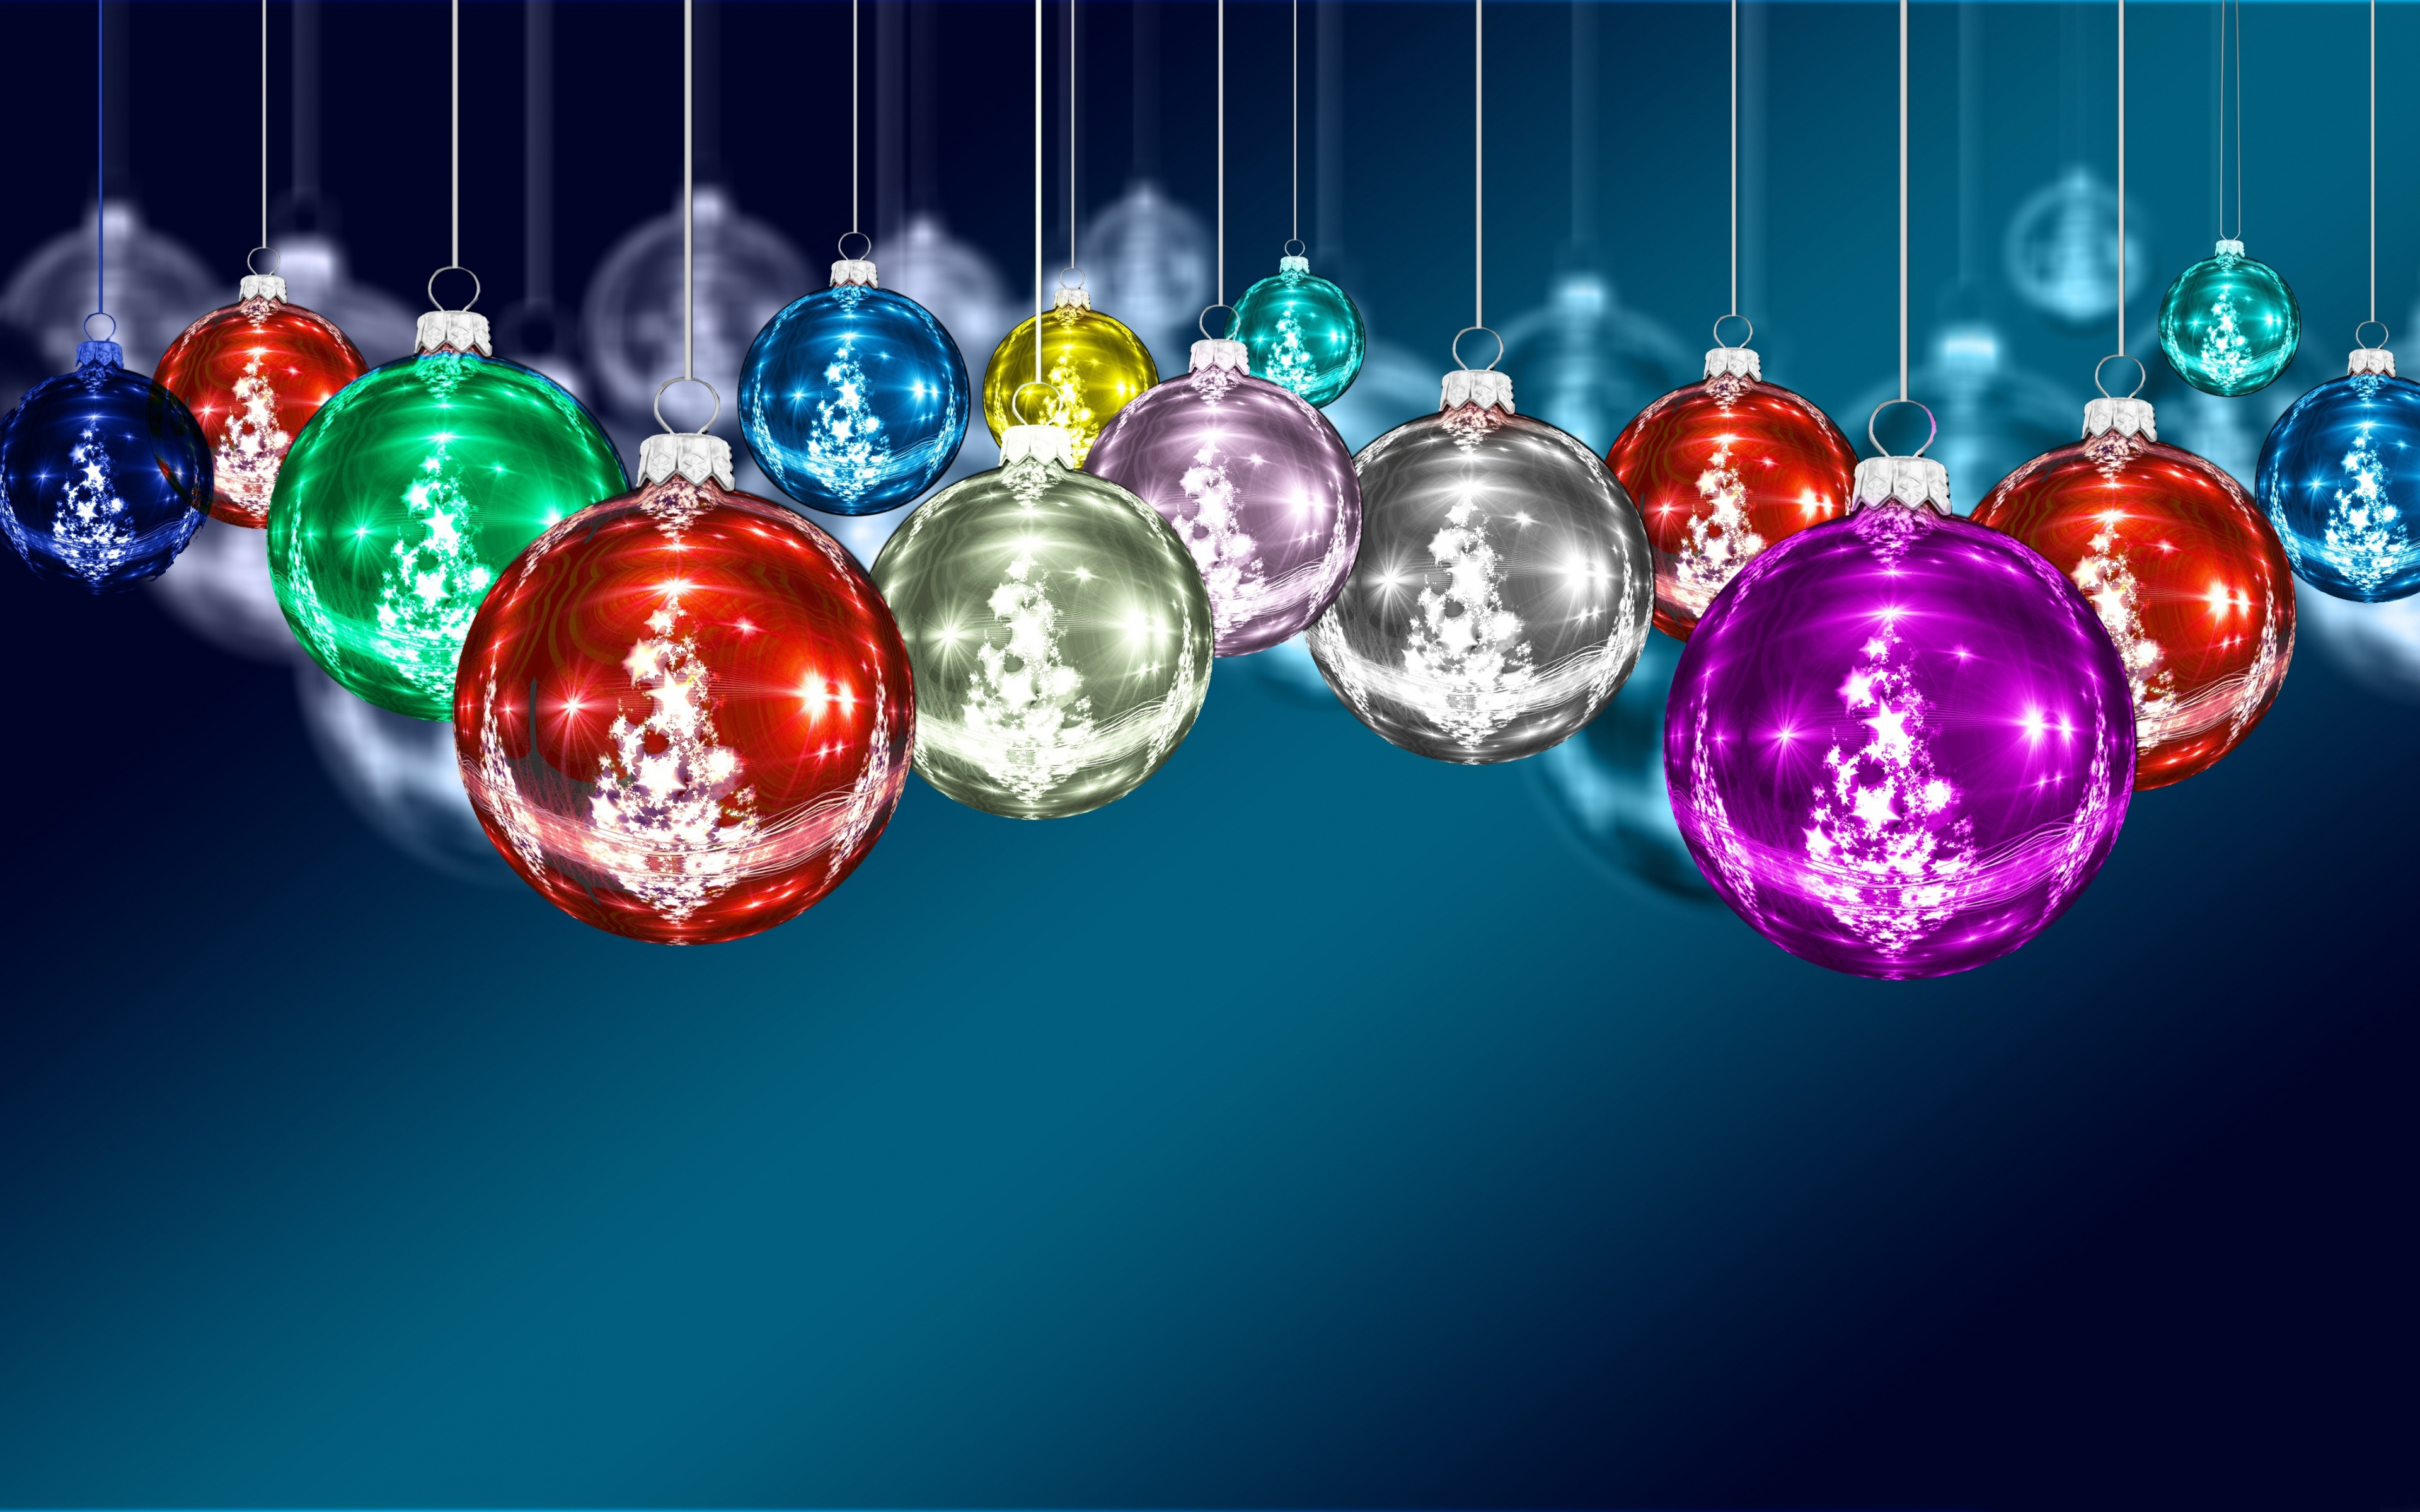 Colorful Christmas Ornaments 4k Ultra HD Wallpaper ...